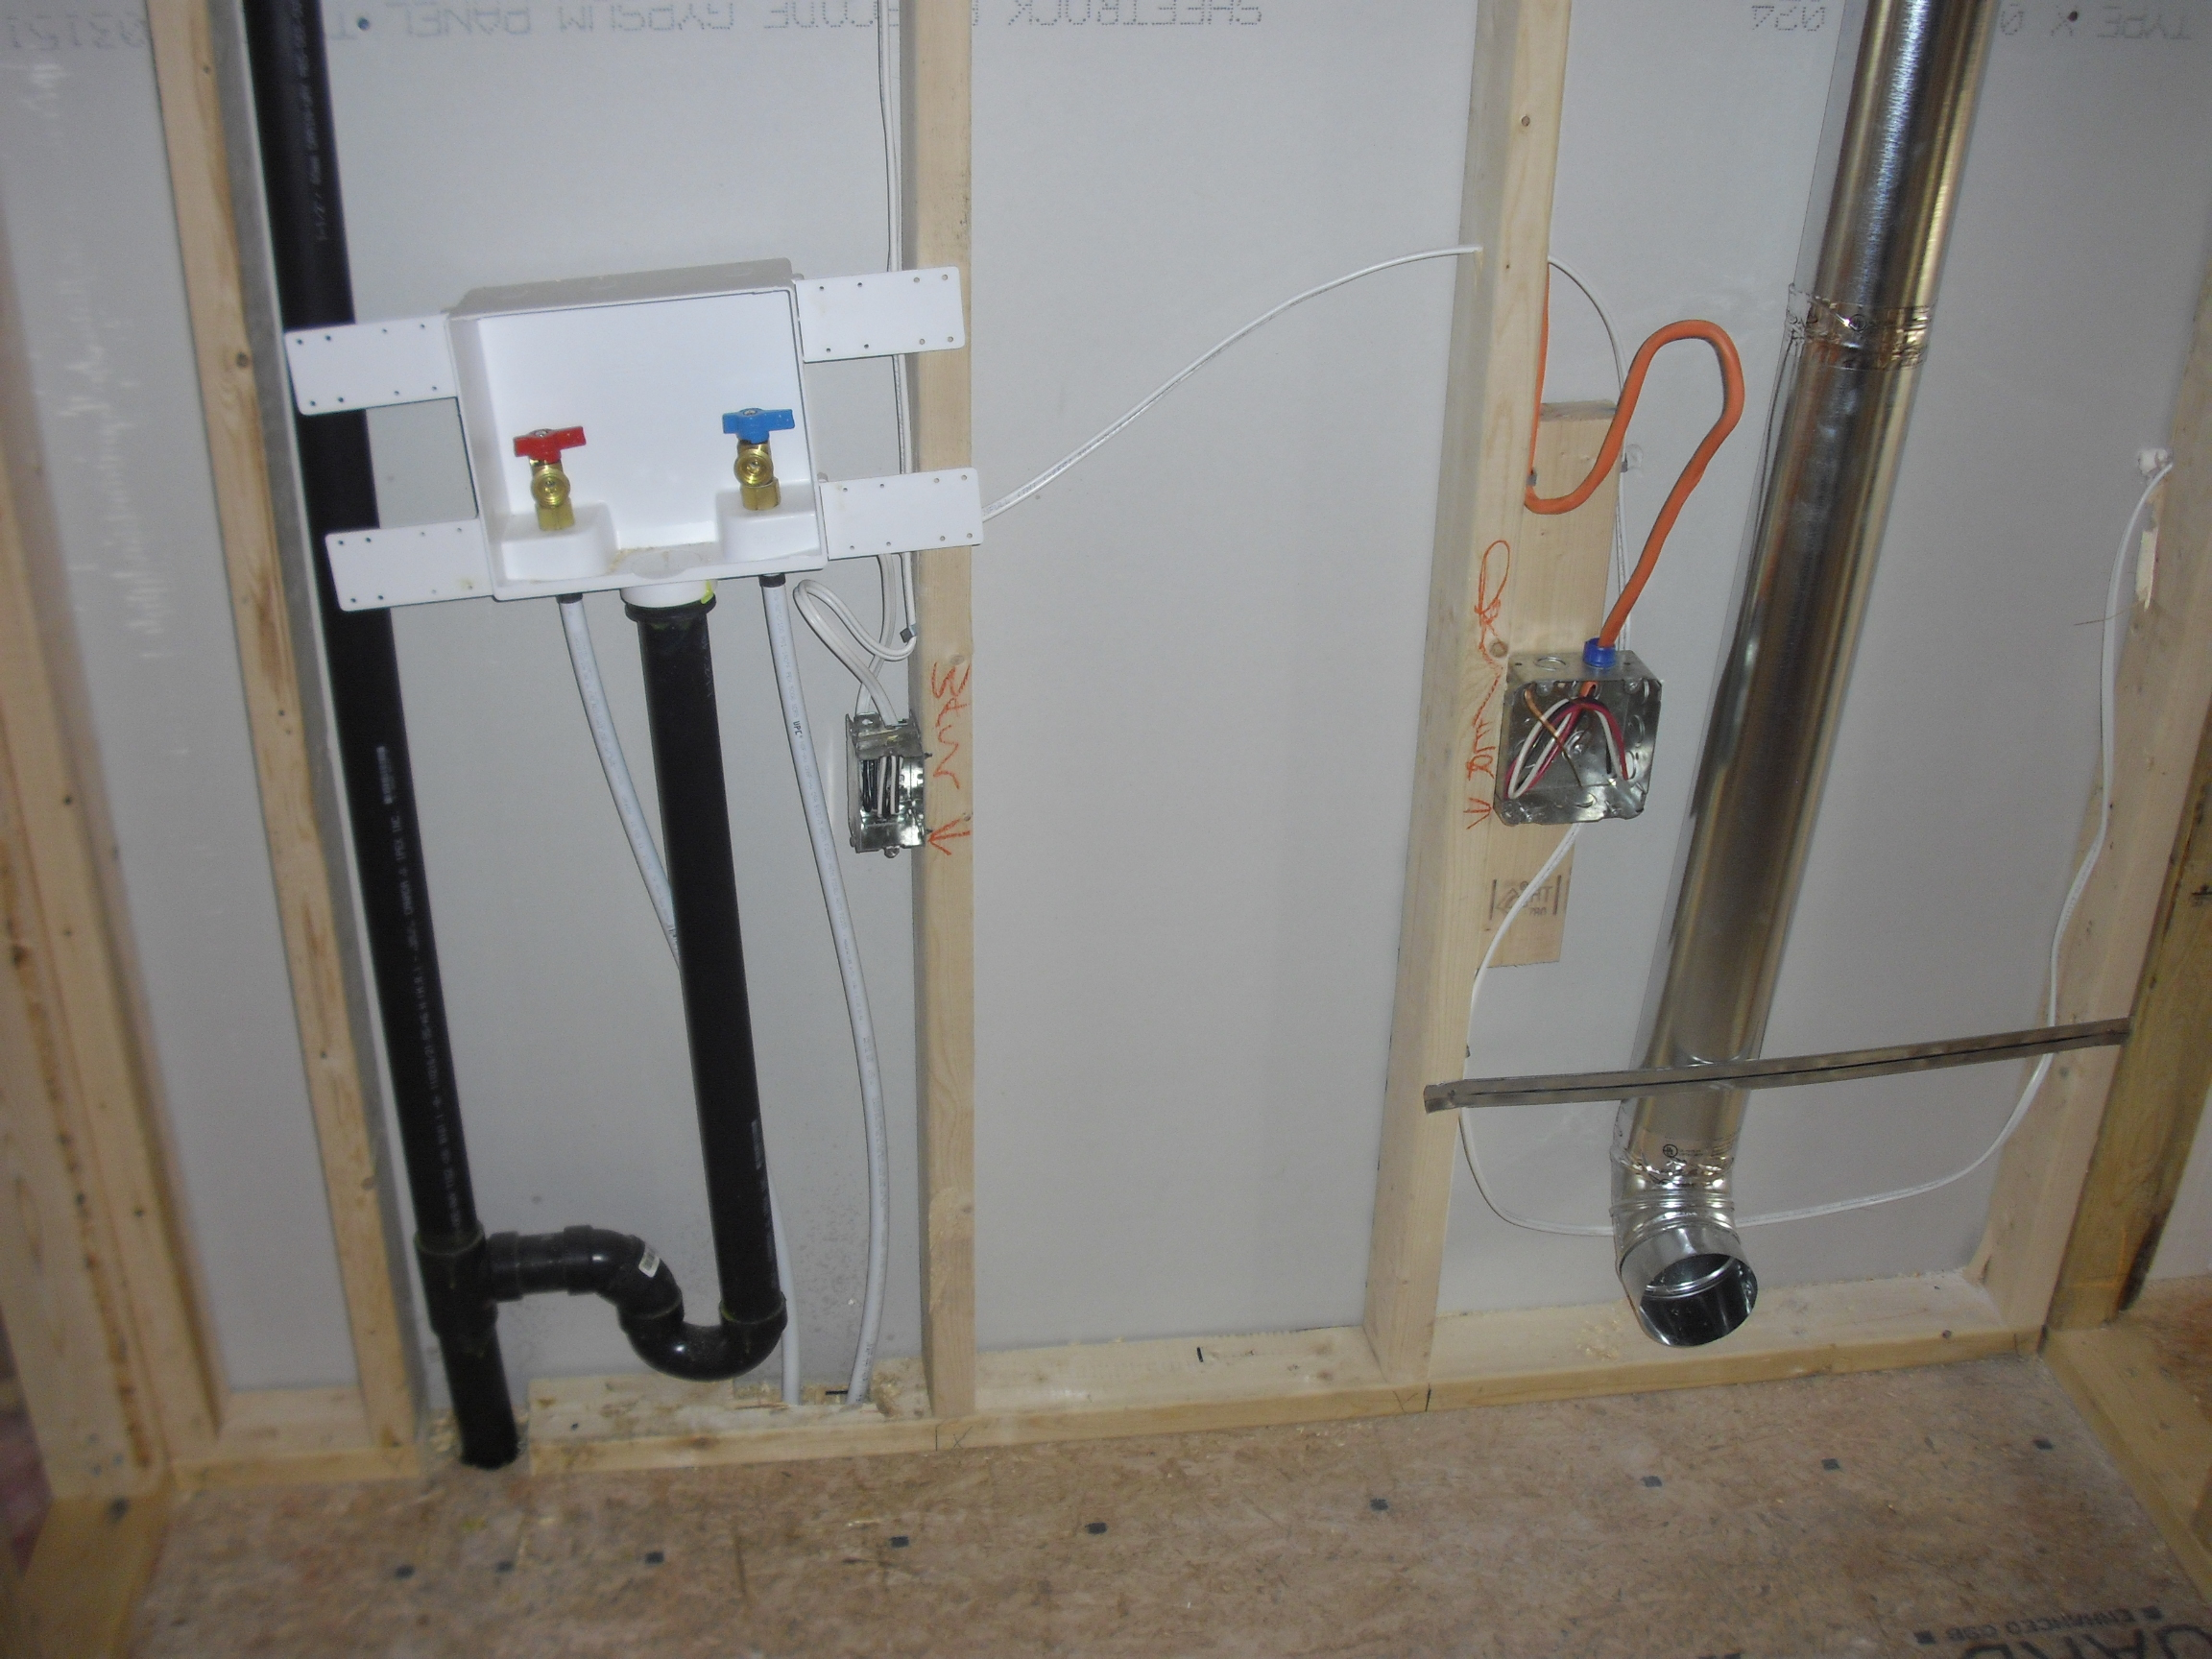 pin laundry room plumbing rough in image search results on